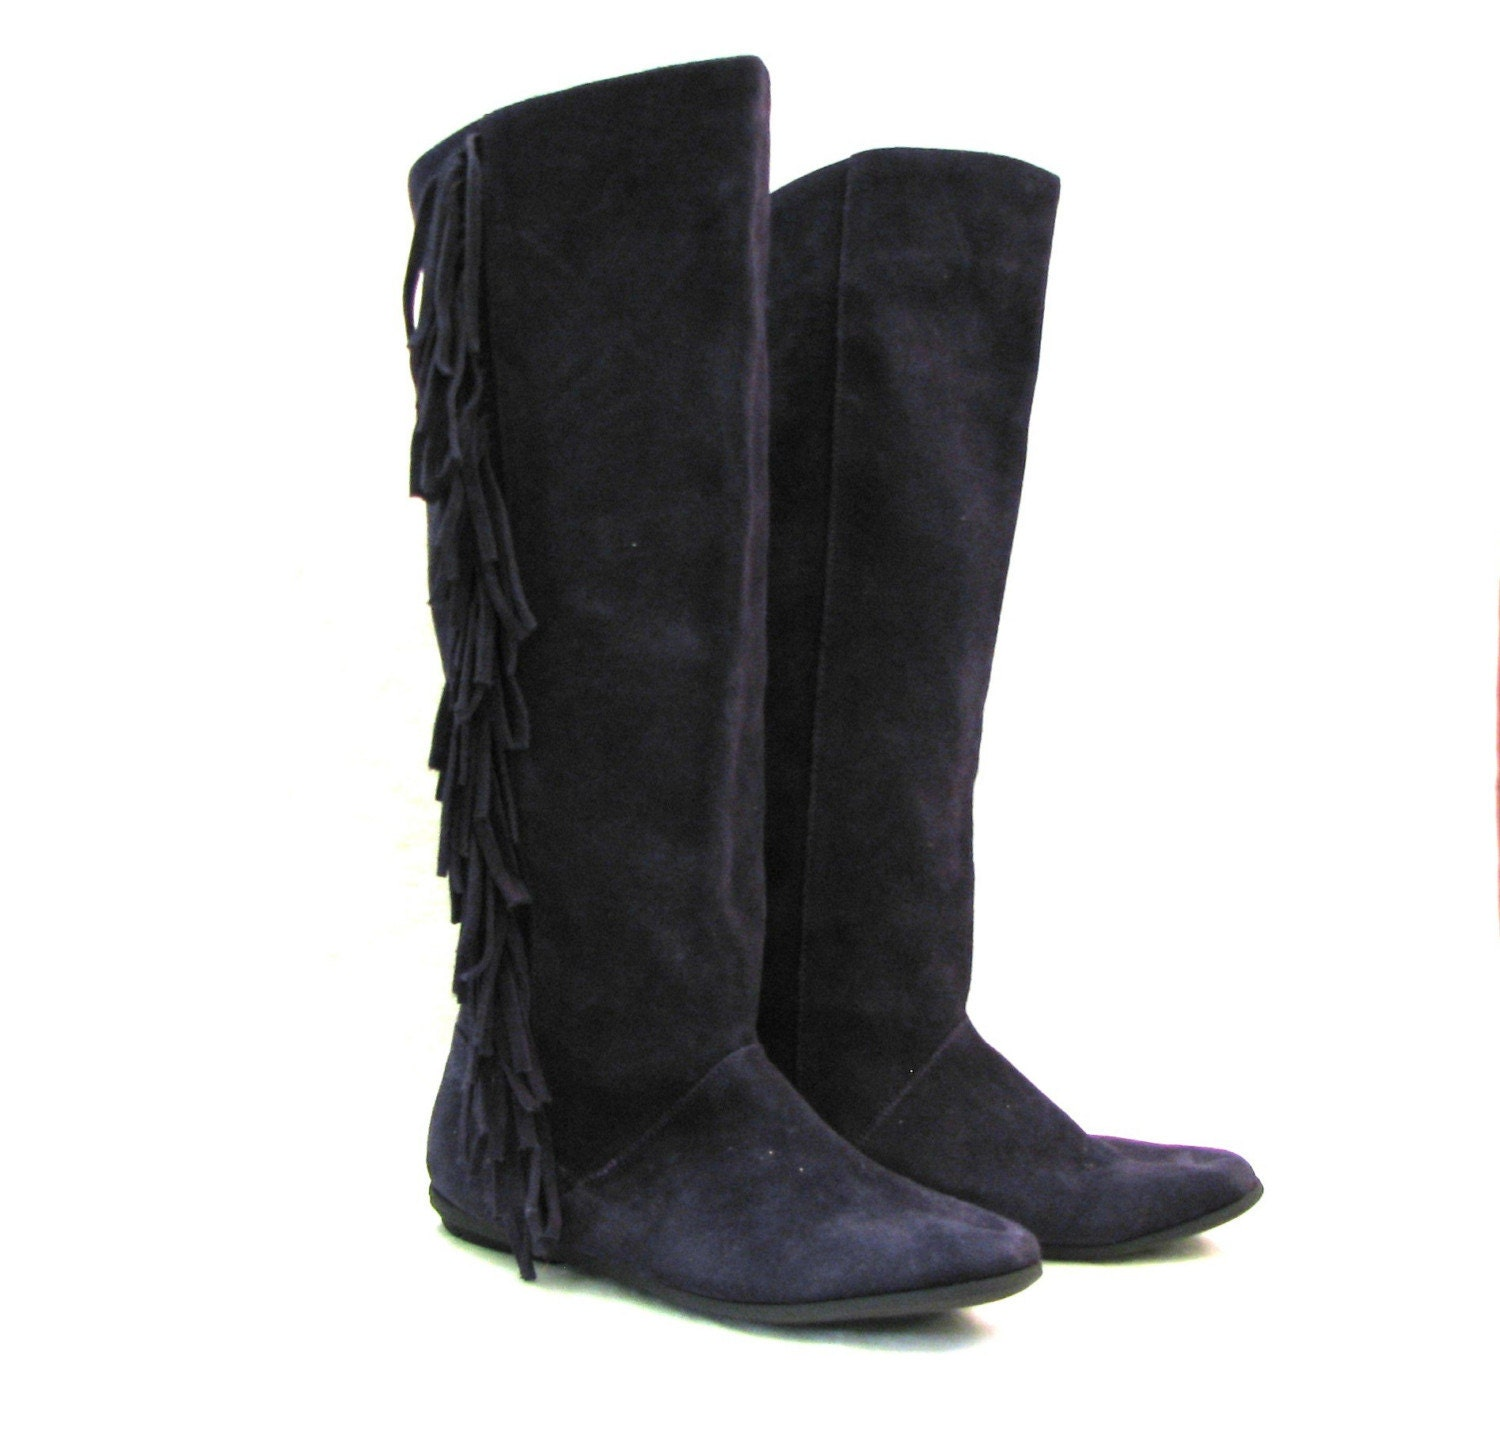 purple suede moccasin fringe knee high boots by